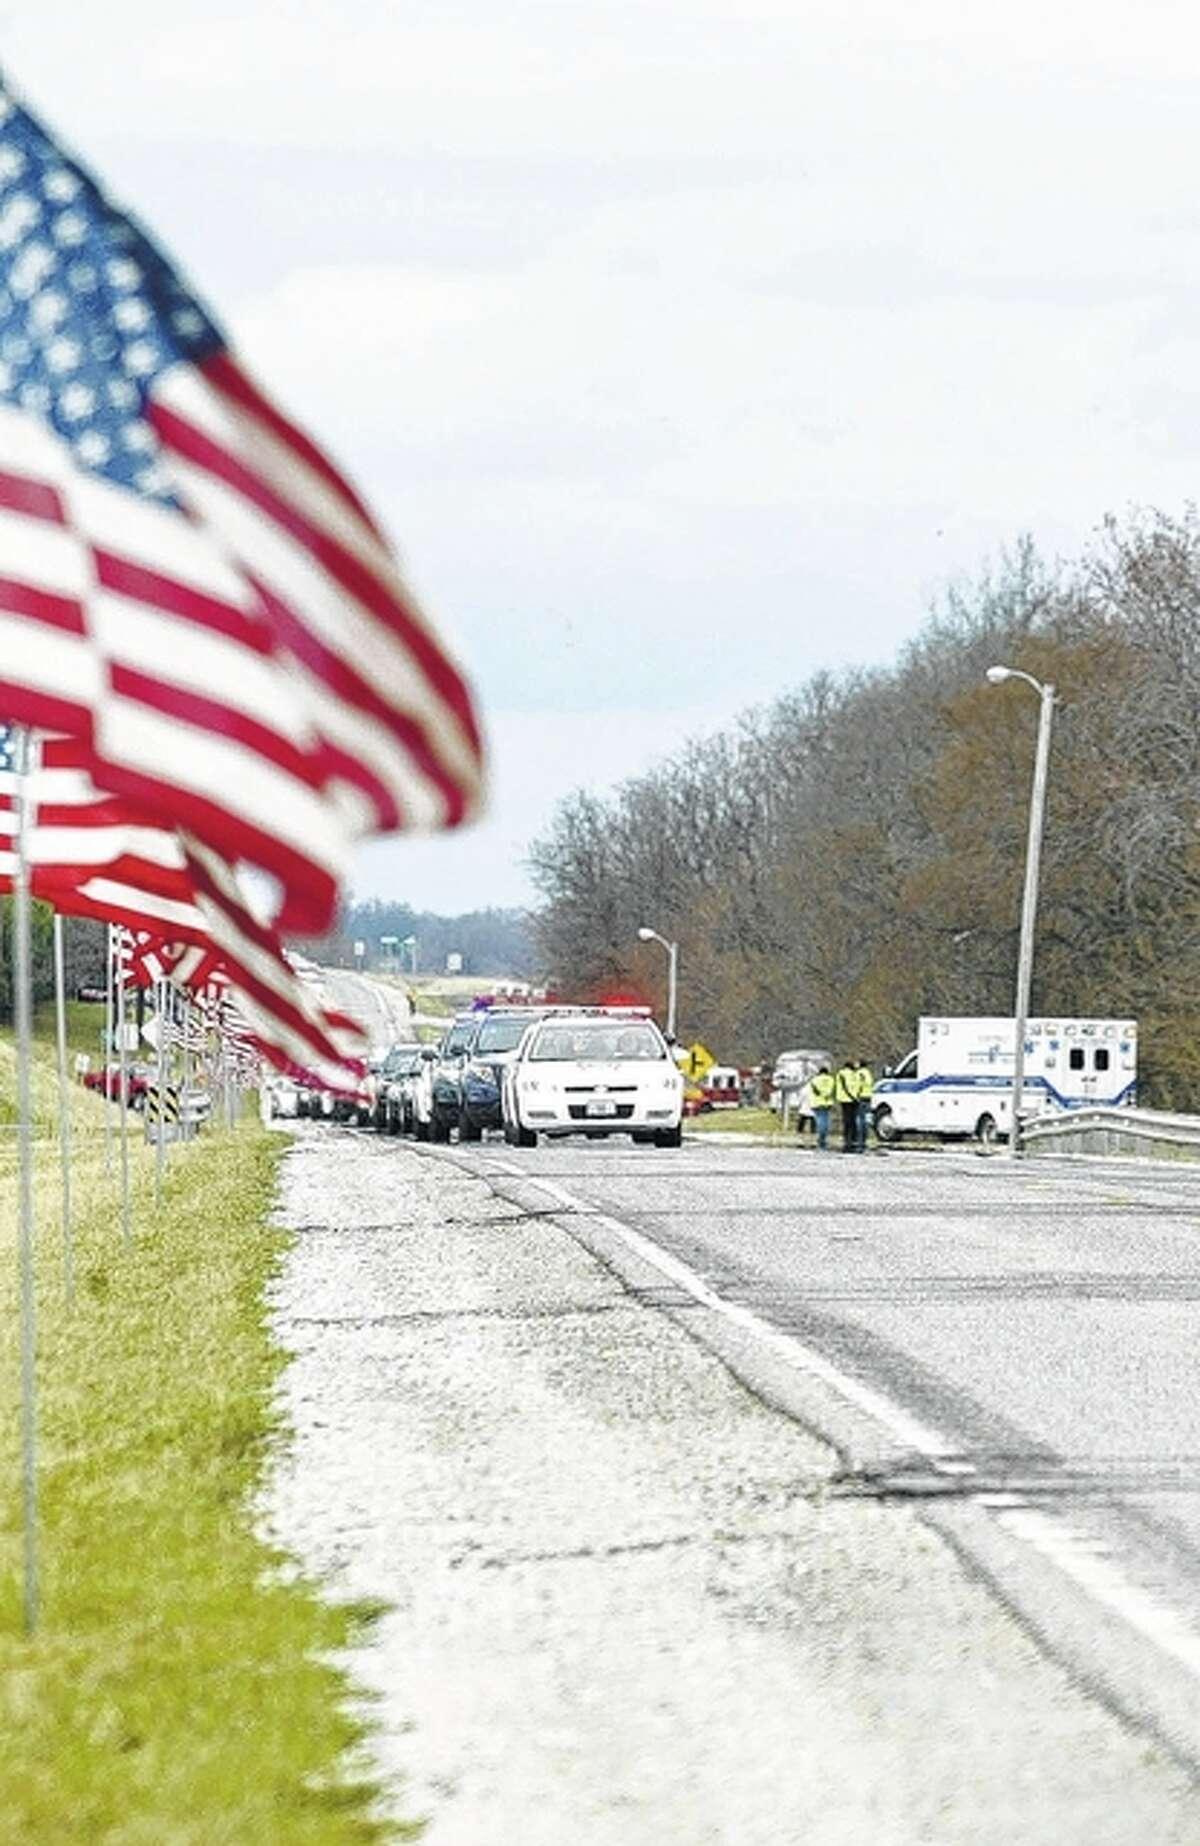 Law enforcement vehicles from across the state process along South Main Street following the funeral of South Jacksonville Police Officer Scot Fitzgerald. The line of vehicles stretched for several miles as emergency officials made their way to Murrayville for the officer's burial.